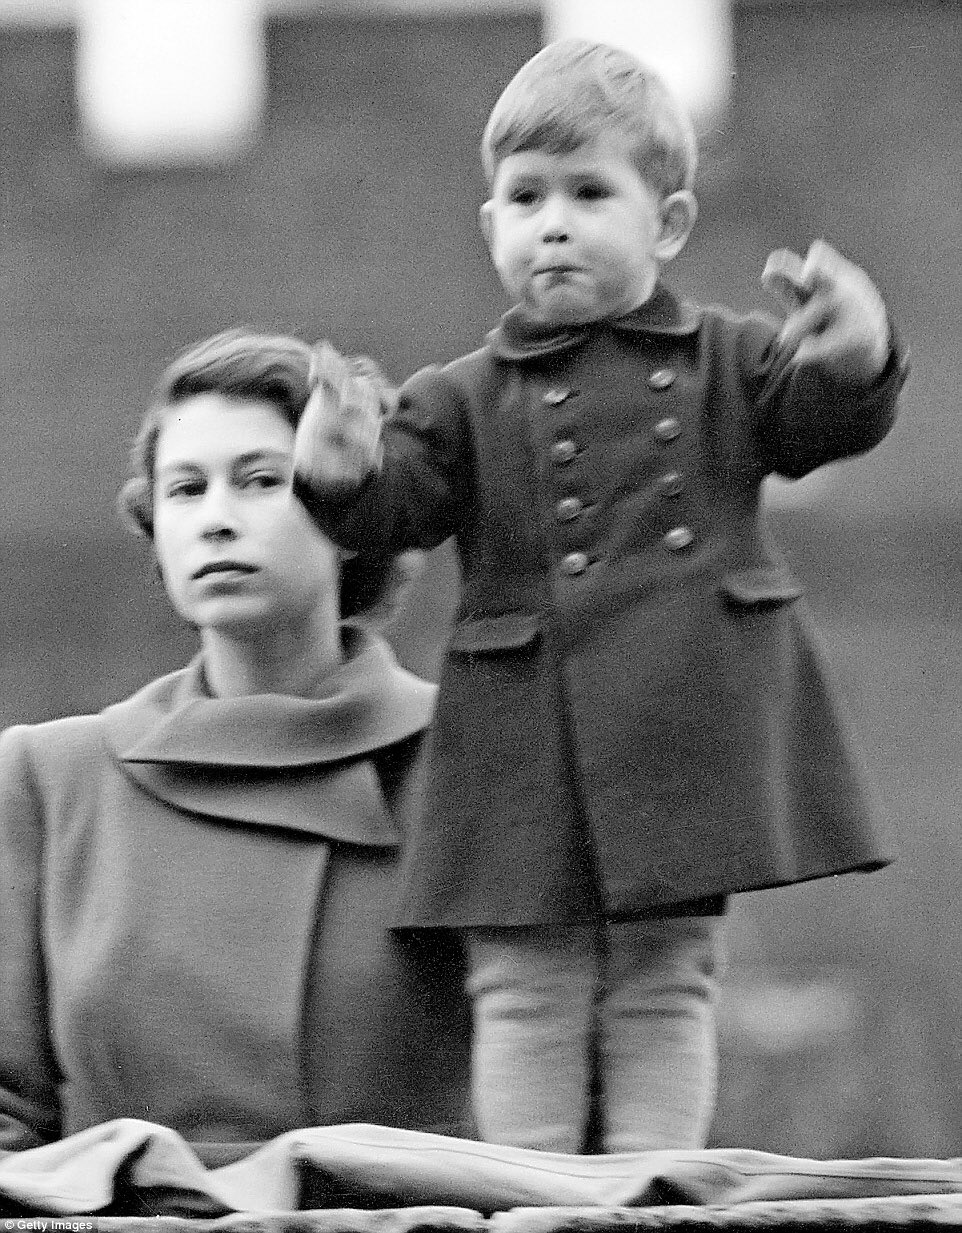 Happy 69th birthday, Prince Charles. (It s already 14 November here.)